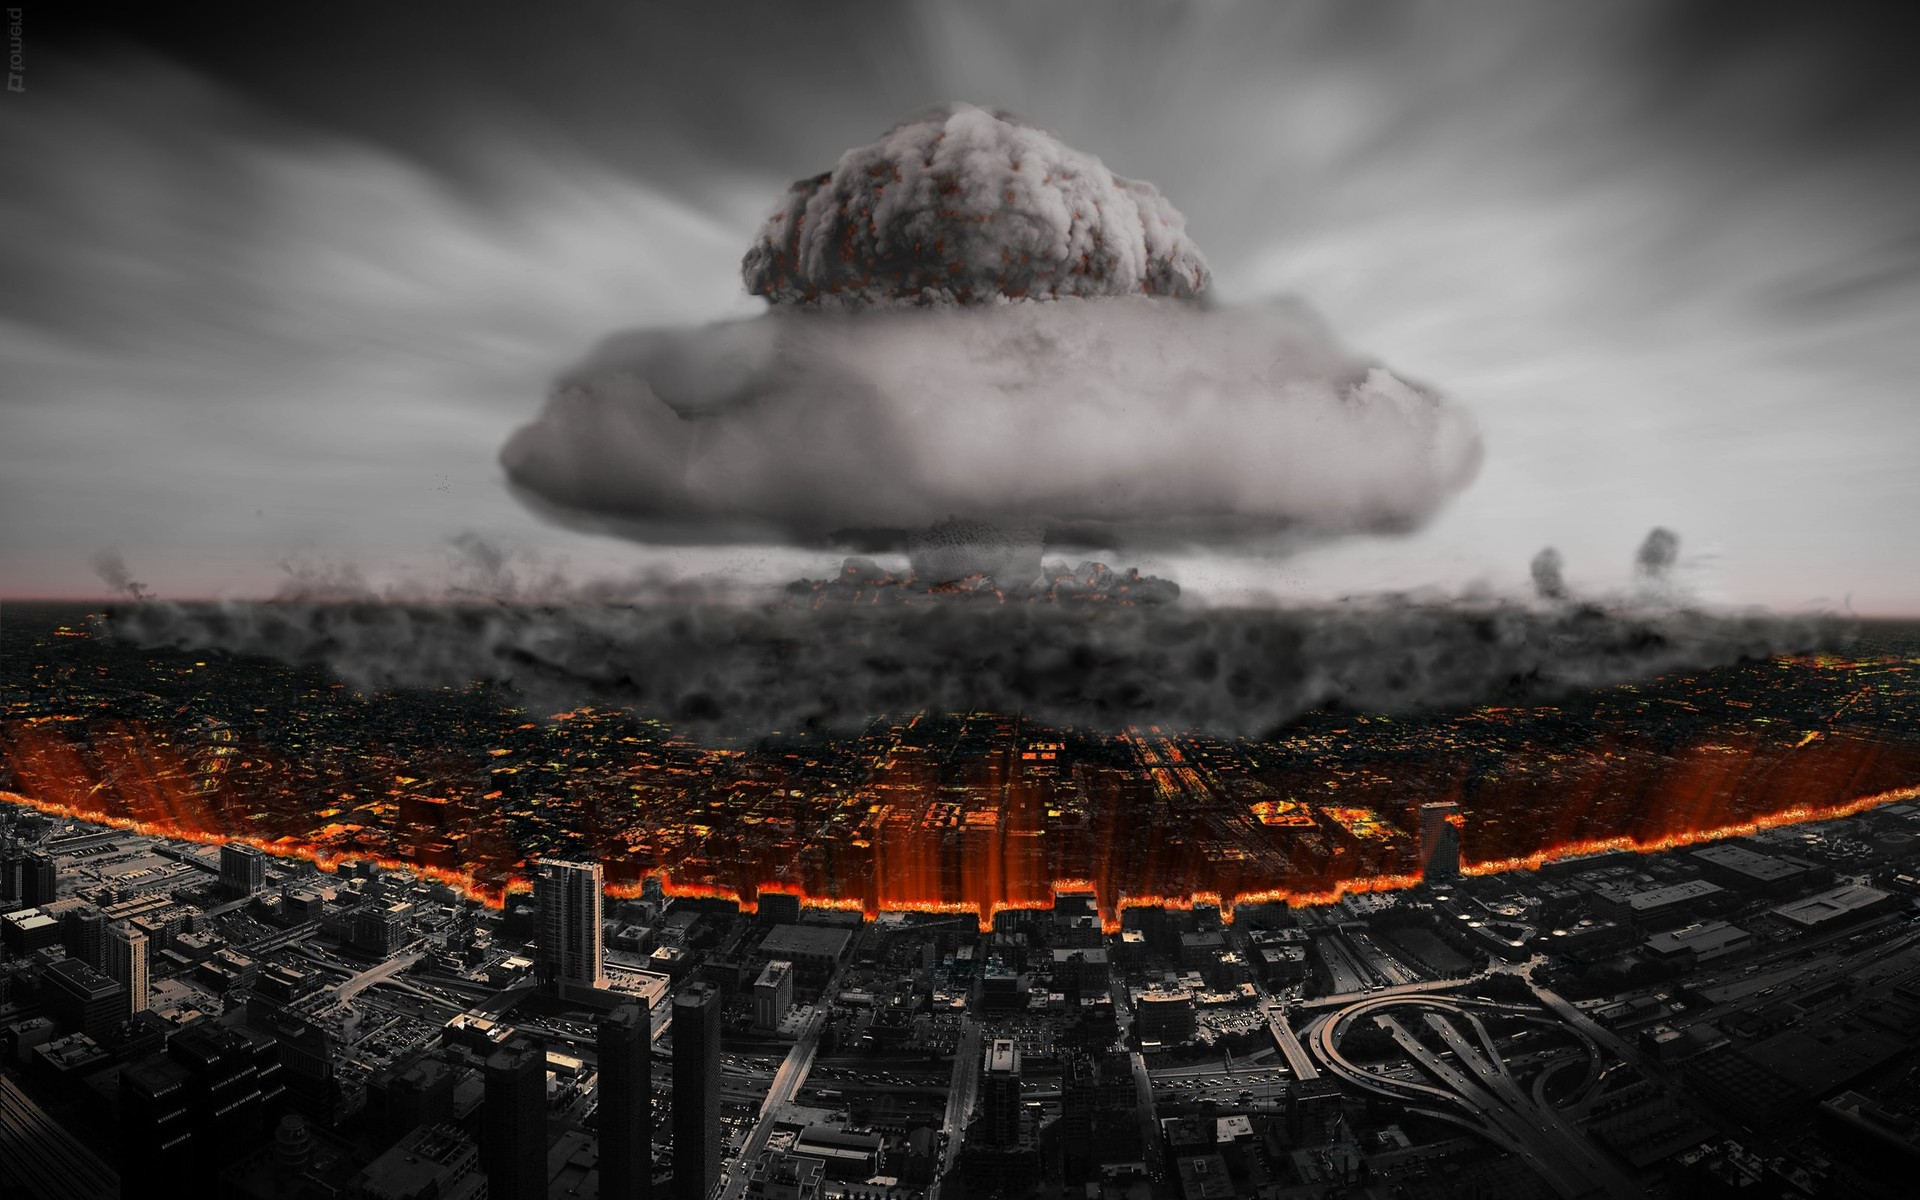 explosion bomb resolution 2560x1600 date 13 10 15 downloads 8677 1920x1200